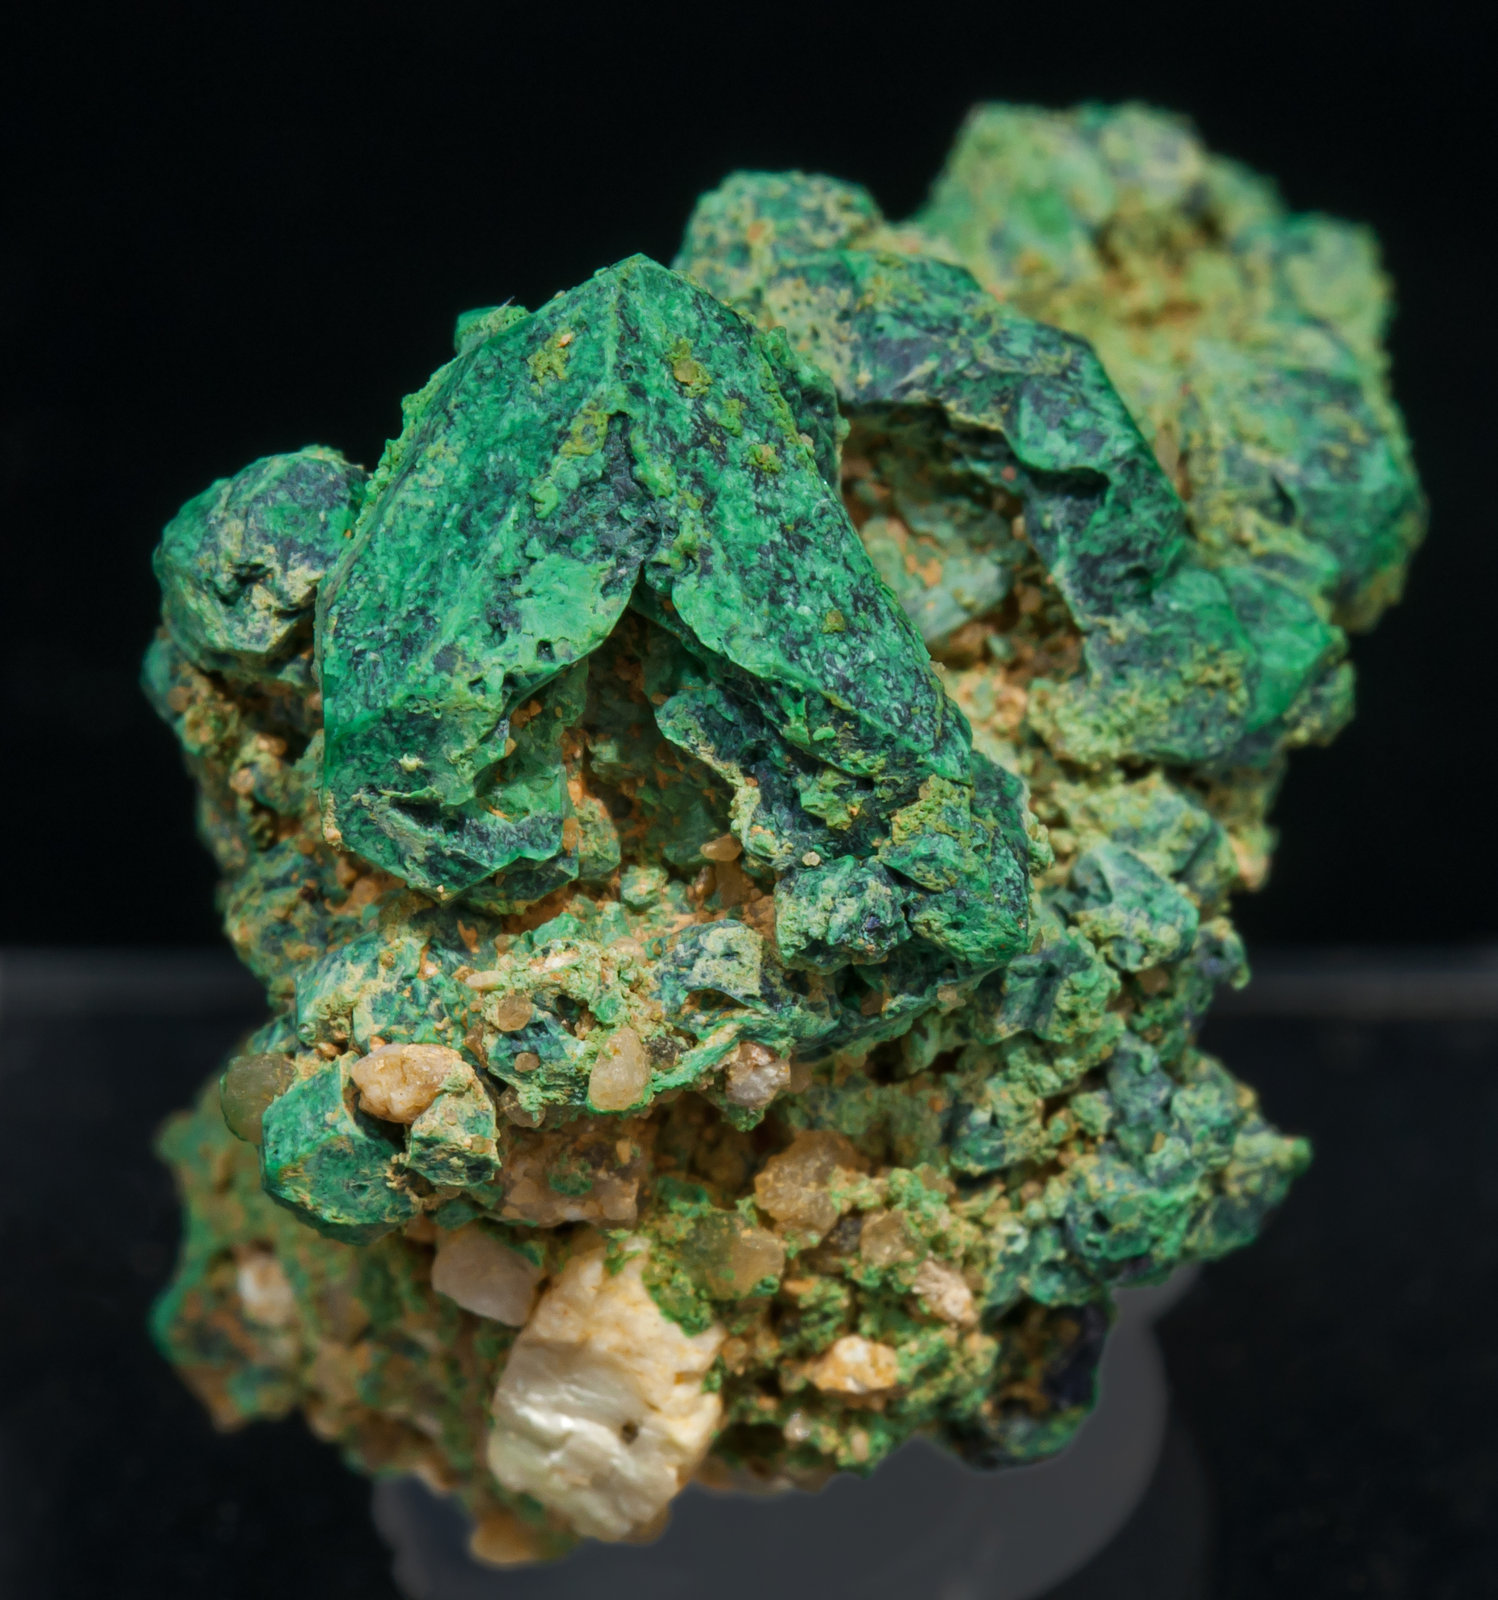 specimens/s_imagesAE8/Malachite-EH14AE8f.jpg